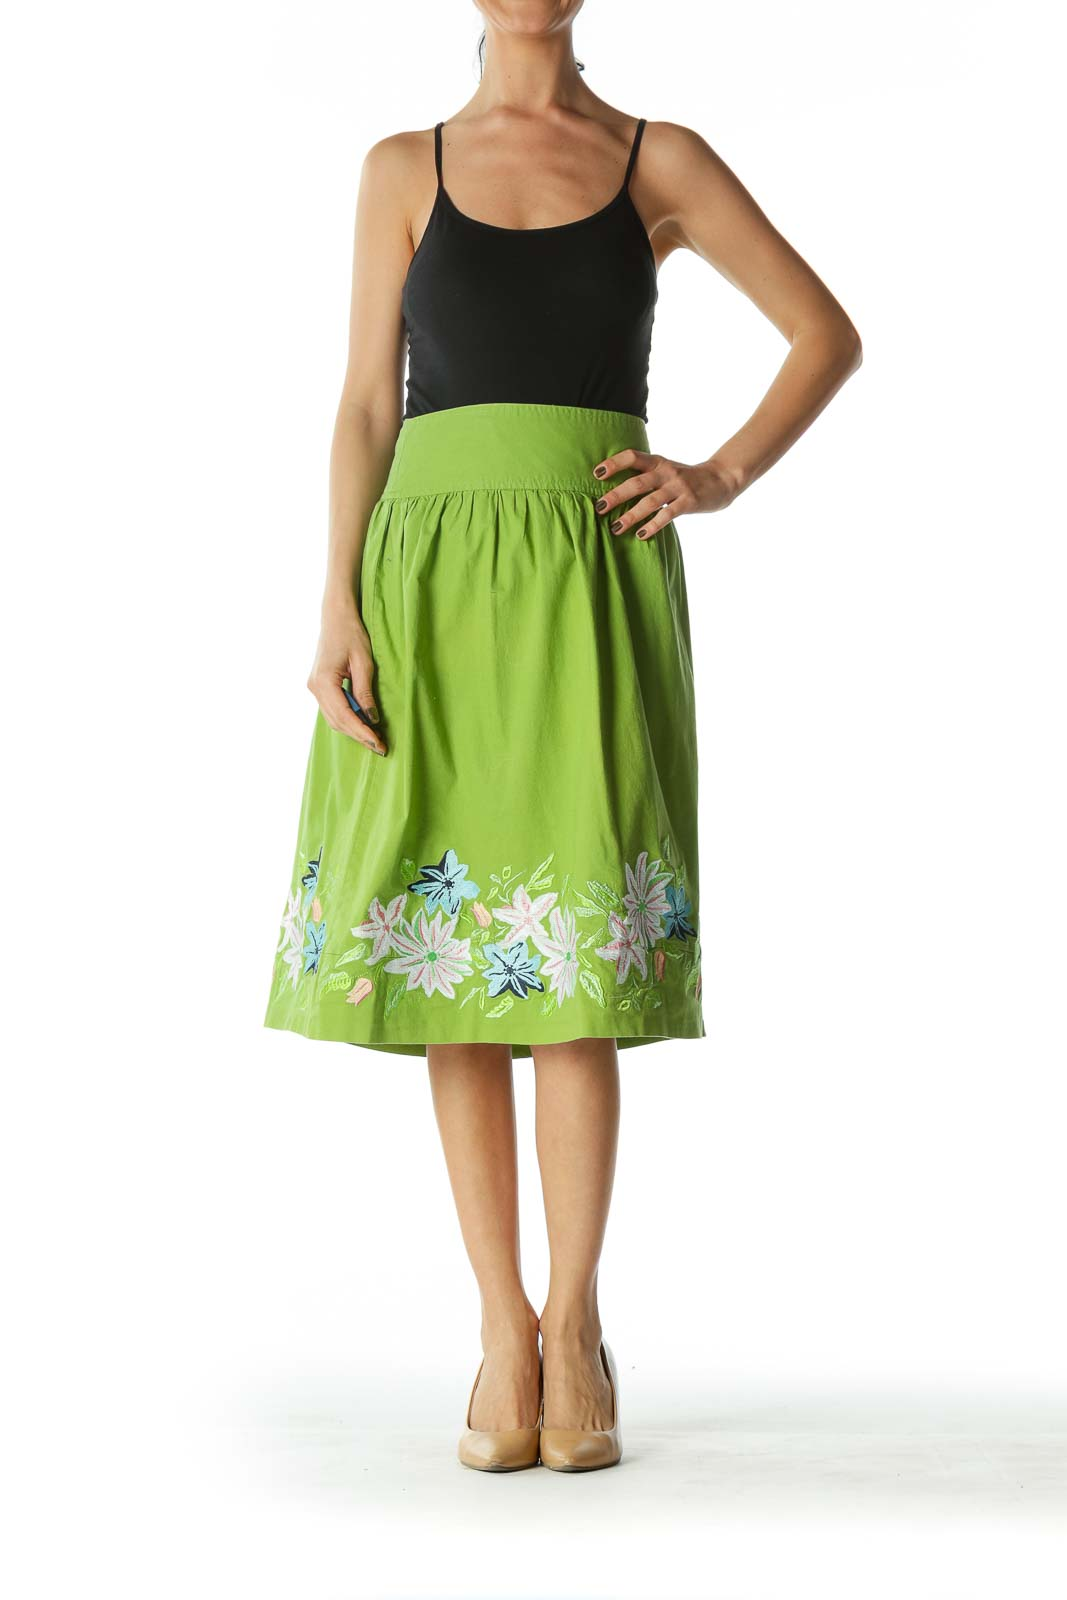 Green A-Line Skirt with Floral Print